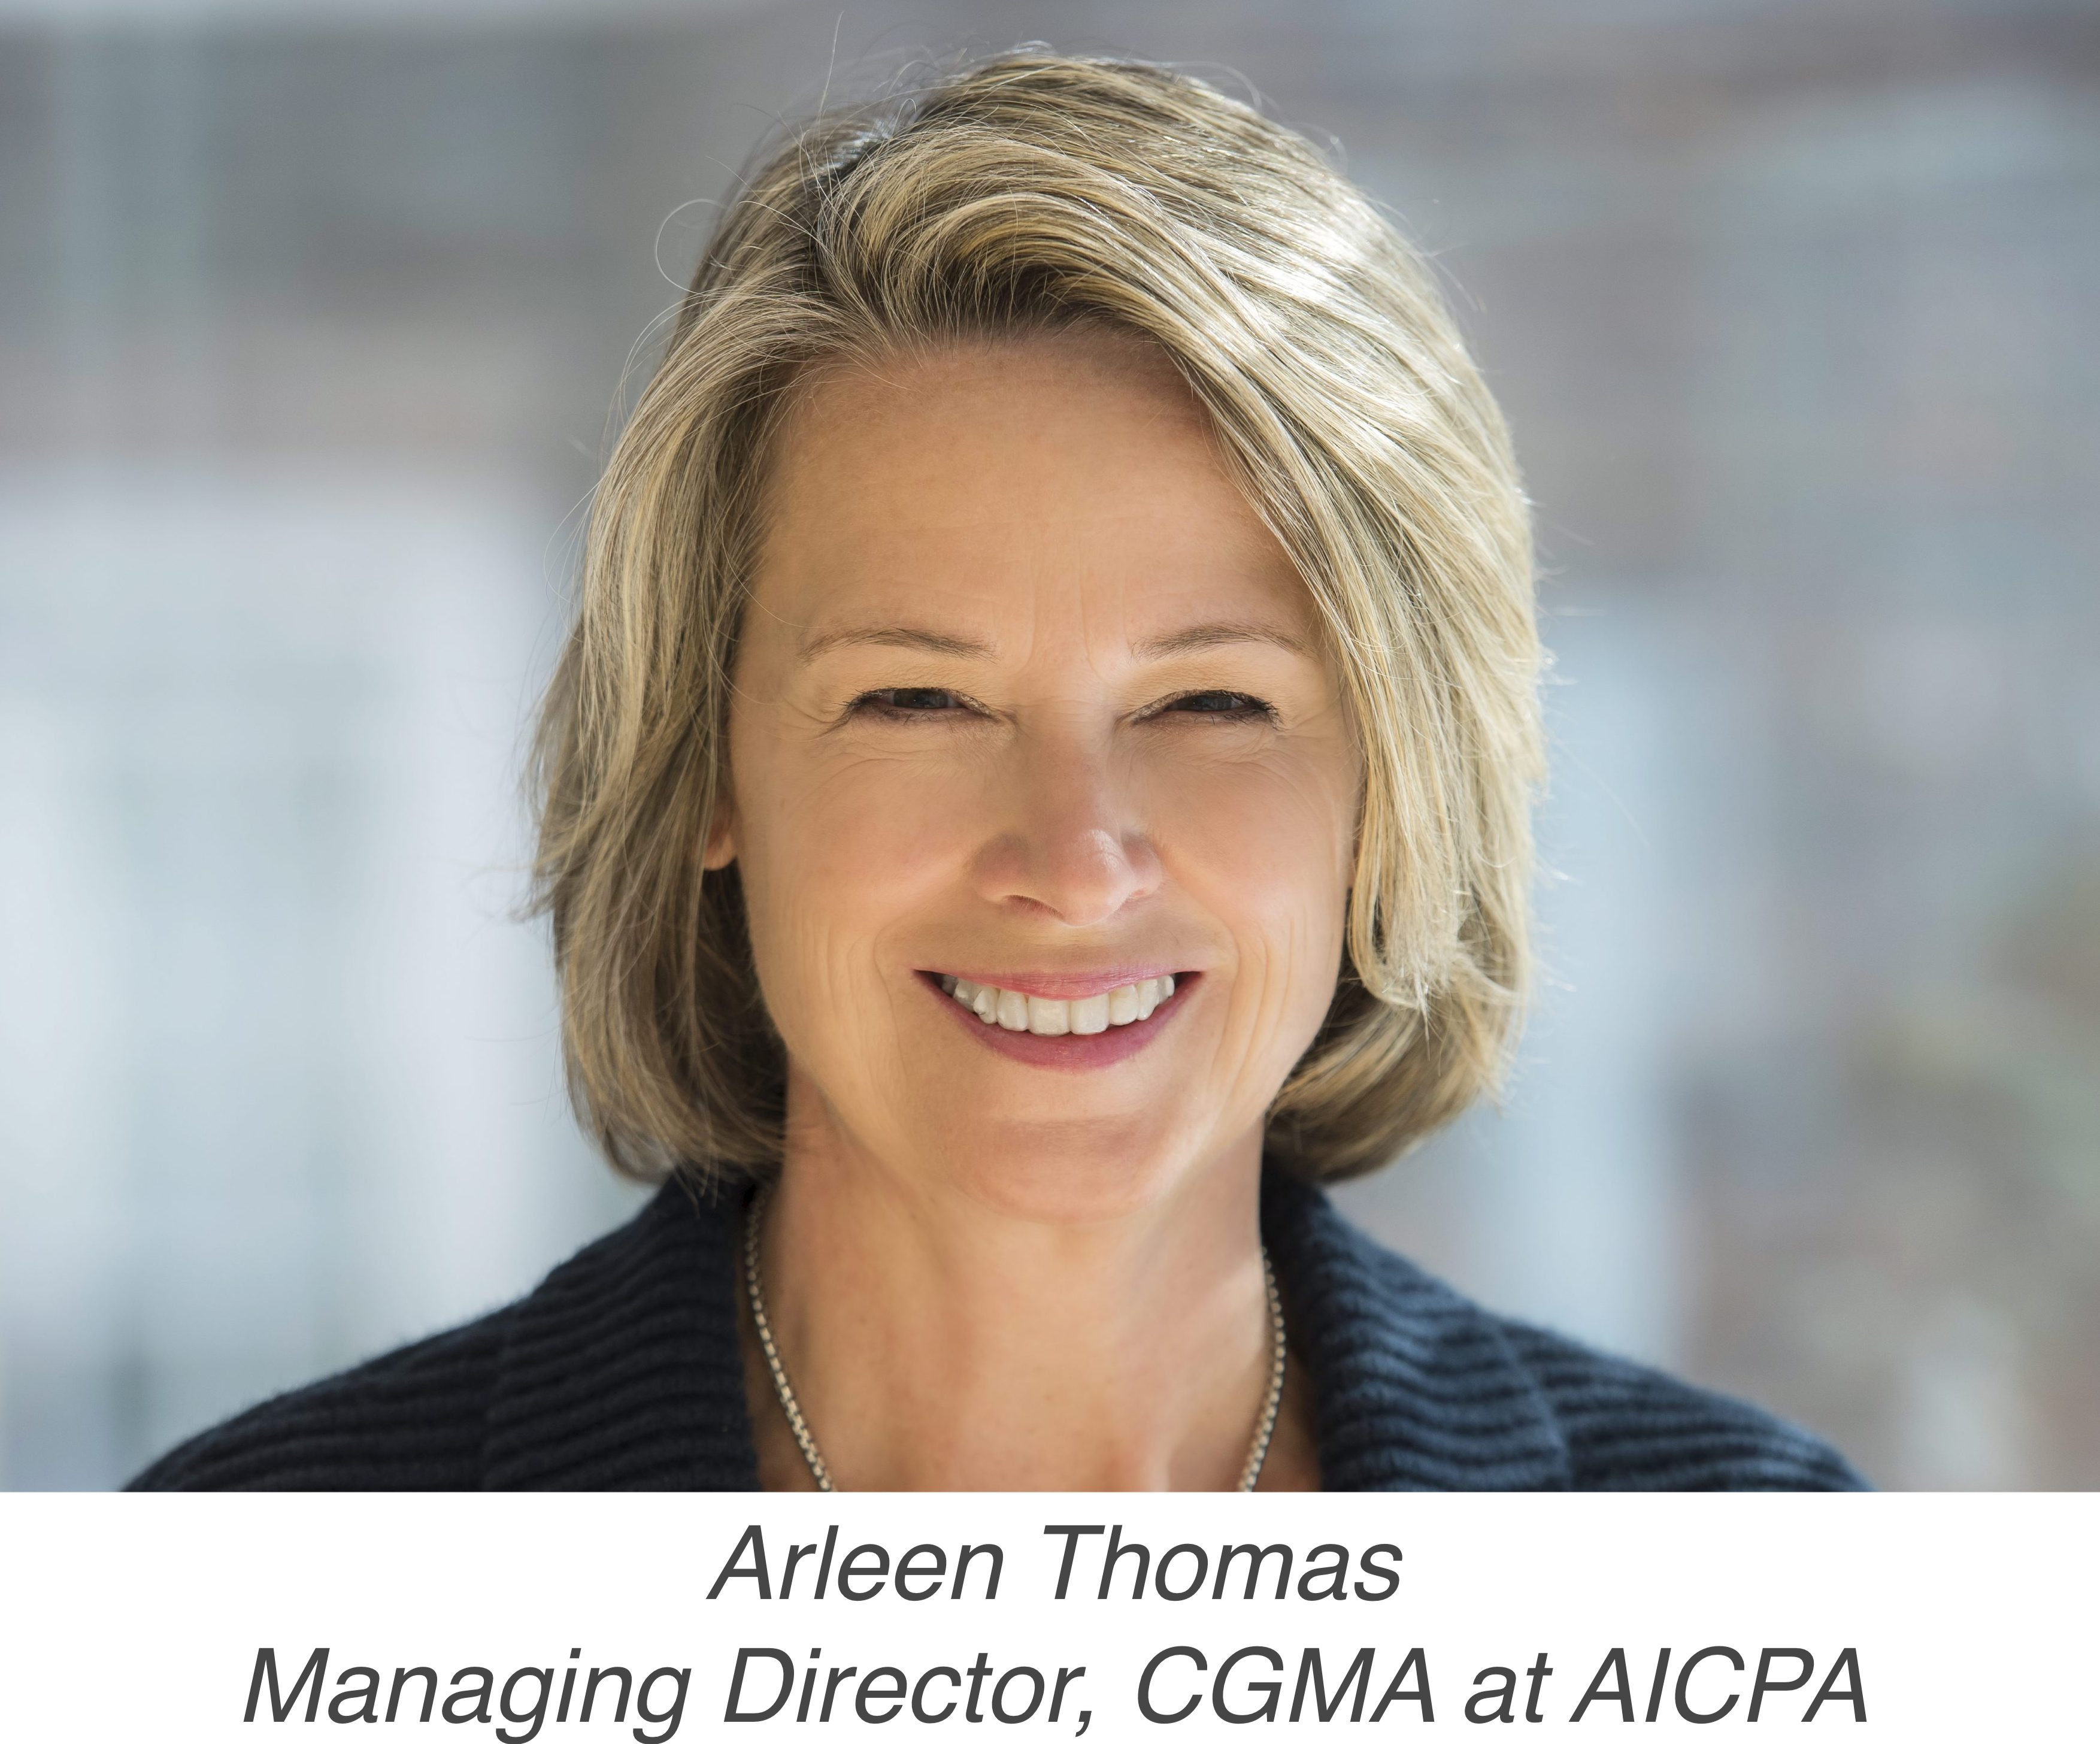 Arleen Thomas, Managing Direction, CGMA at AICPA